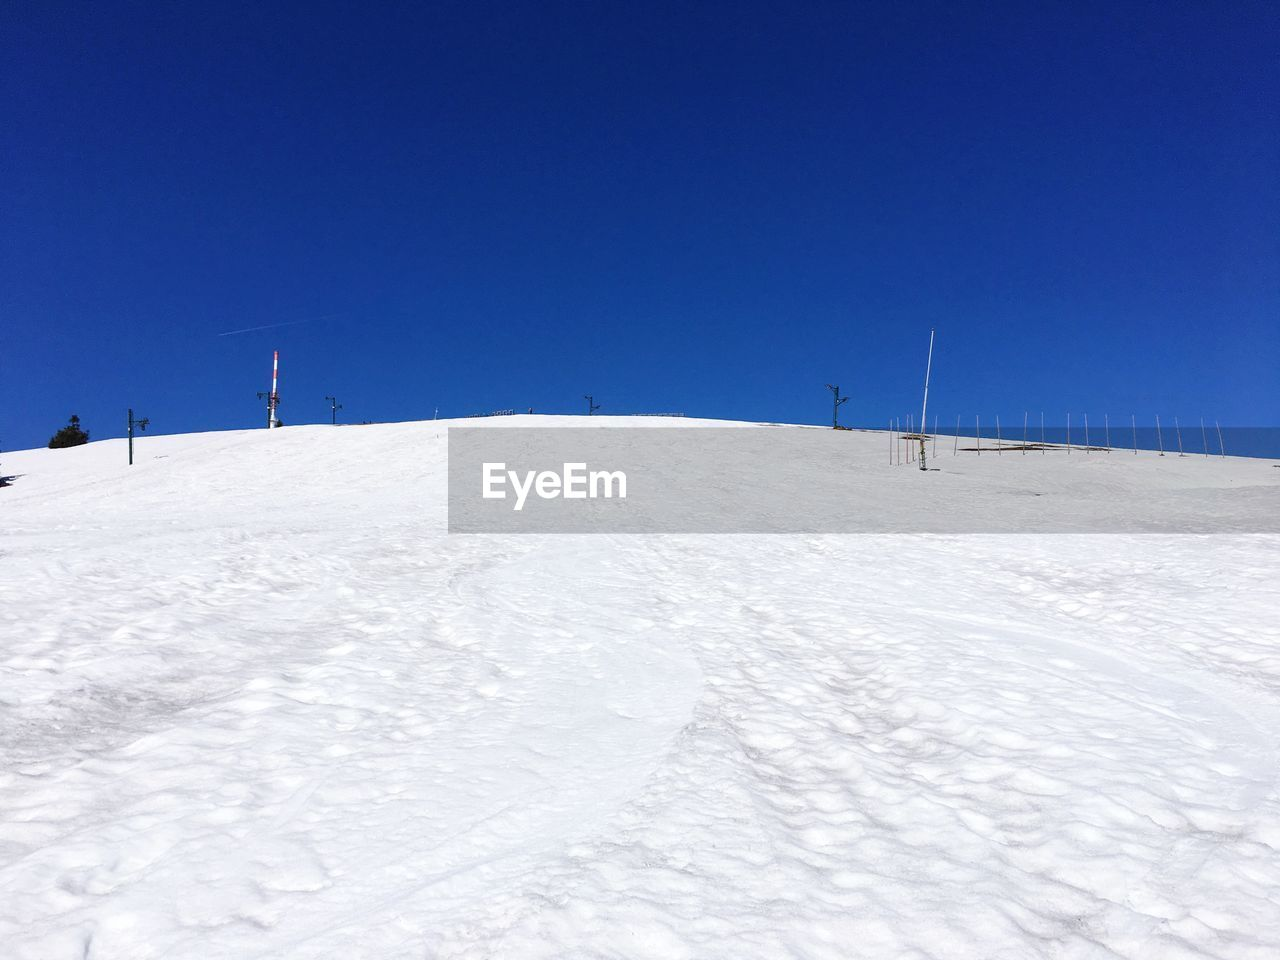 snow, winter, cold temperature, sky, clear sky, land, tranquility, tranquil scene, scenics - nature, blue, nature, white color, environment, copy space, beauty in nature, day, landscape, non-urban scene, field, outdoors, ski slope, snowcapped mountain, ski resort